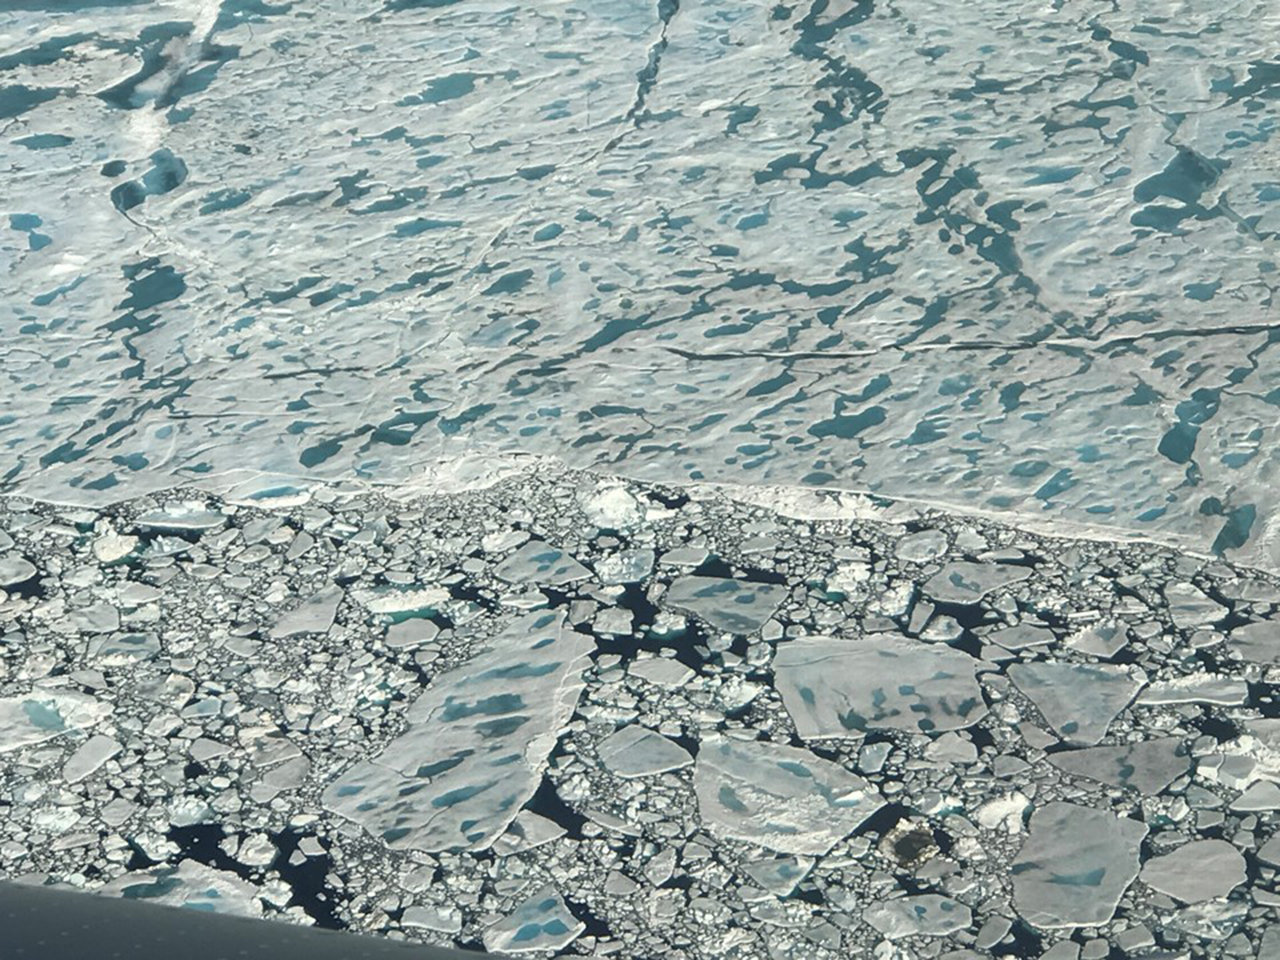 Many melt ponds on sea ice north of Greenland, as seen during an Operation IceBridge flight on July 24, 2017.